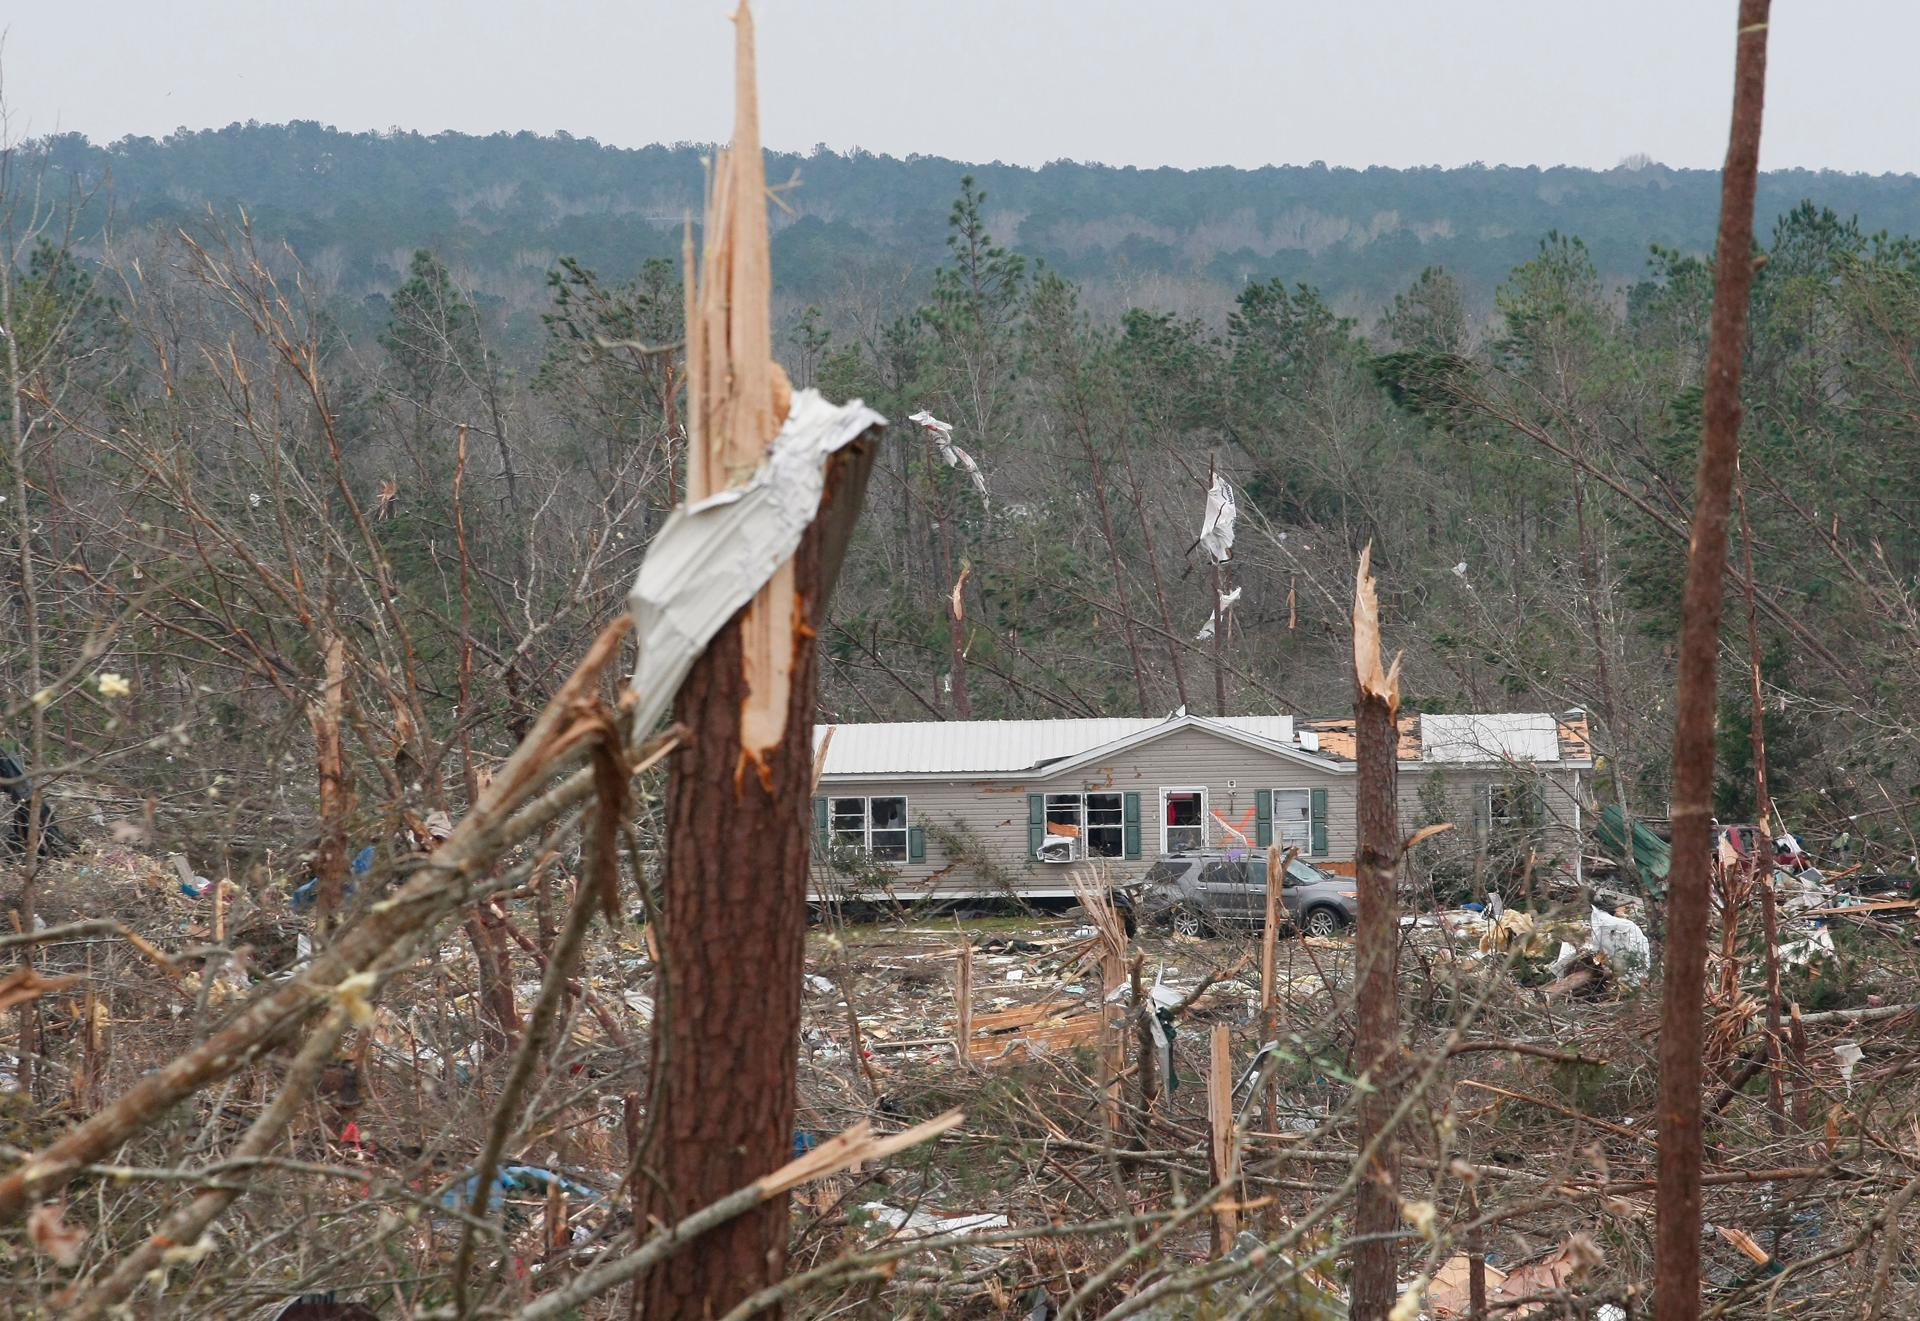 TOPSHOT - Damage is seen from a tornado which killed at least 23 people in Beauregard, Alabama on March 4, 2019. - Rescuers in Alabama were set to resume search operations Monday after at least two tornadoes killed 23 people, uprooted trees and caused